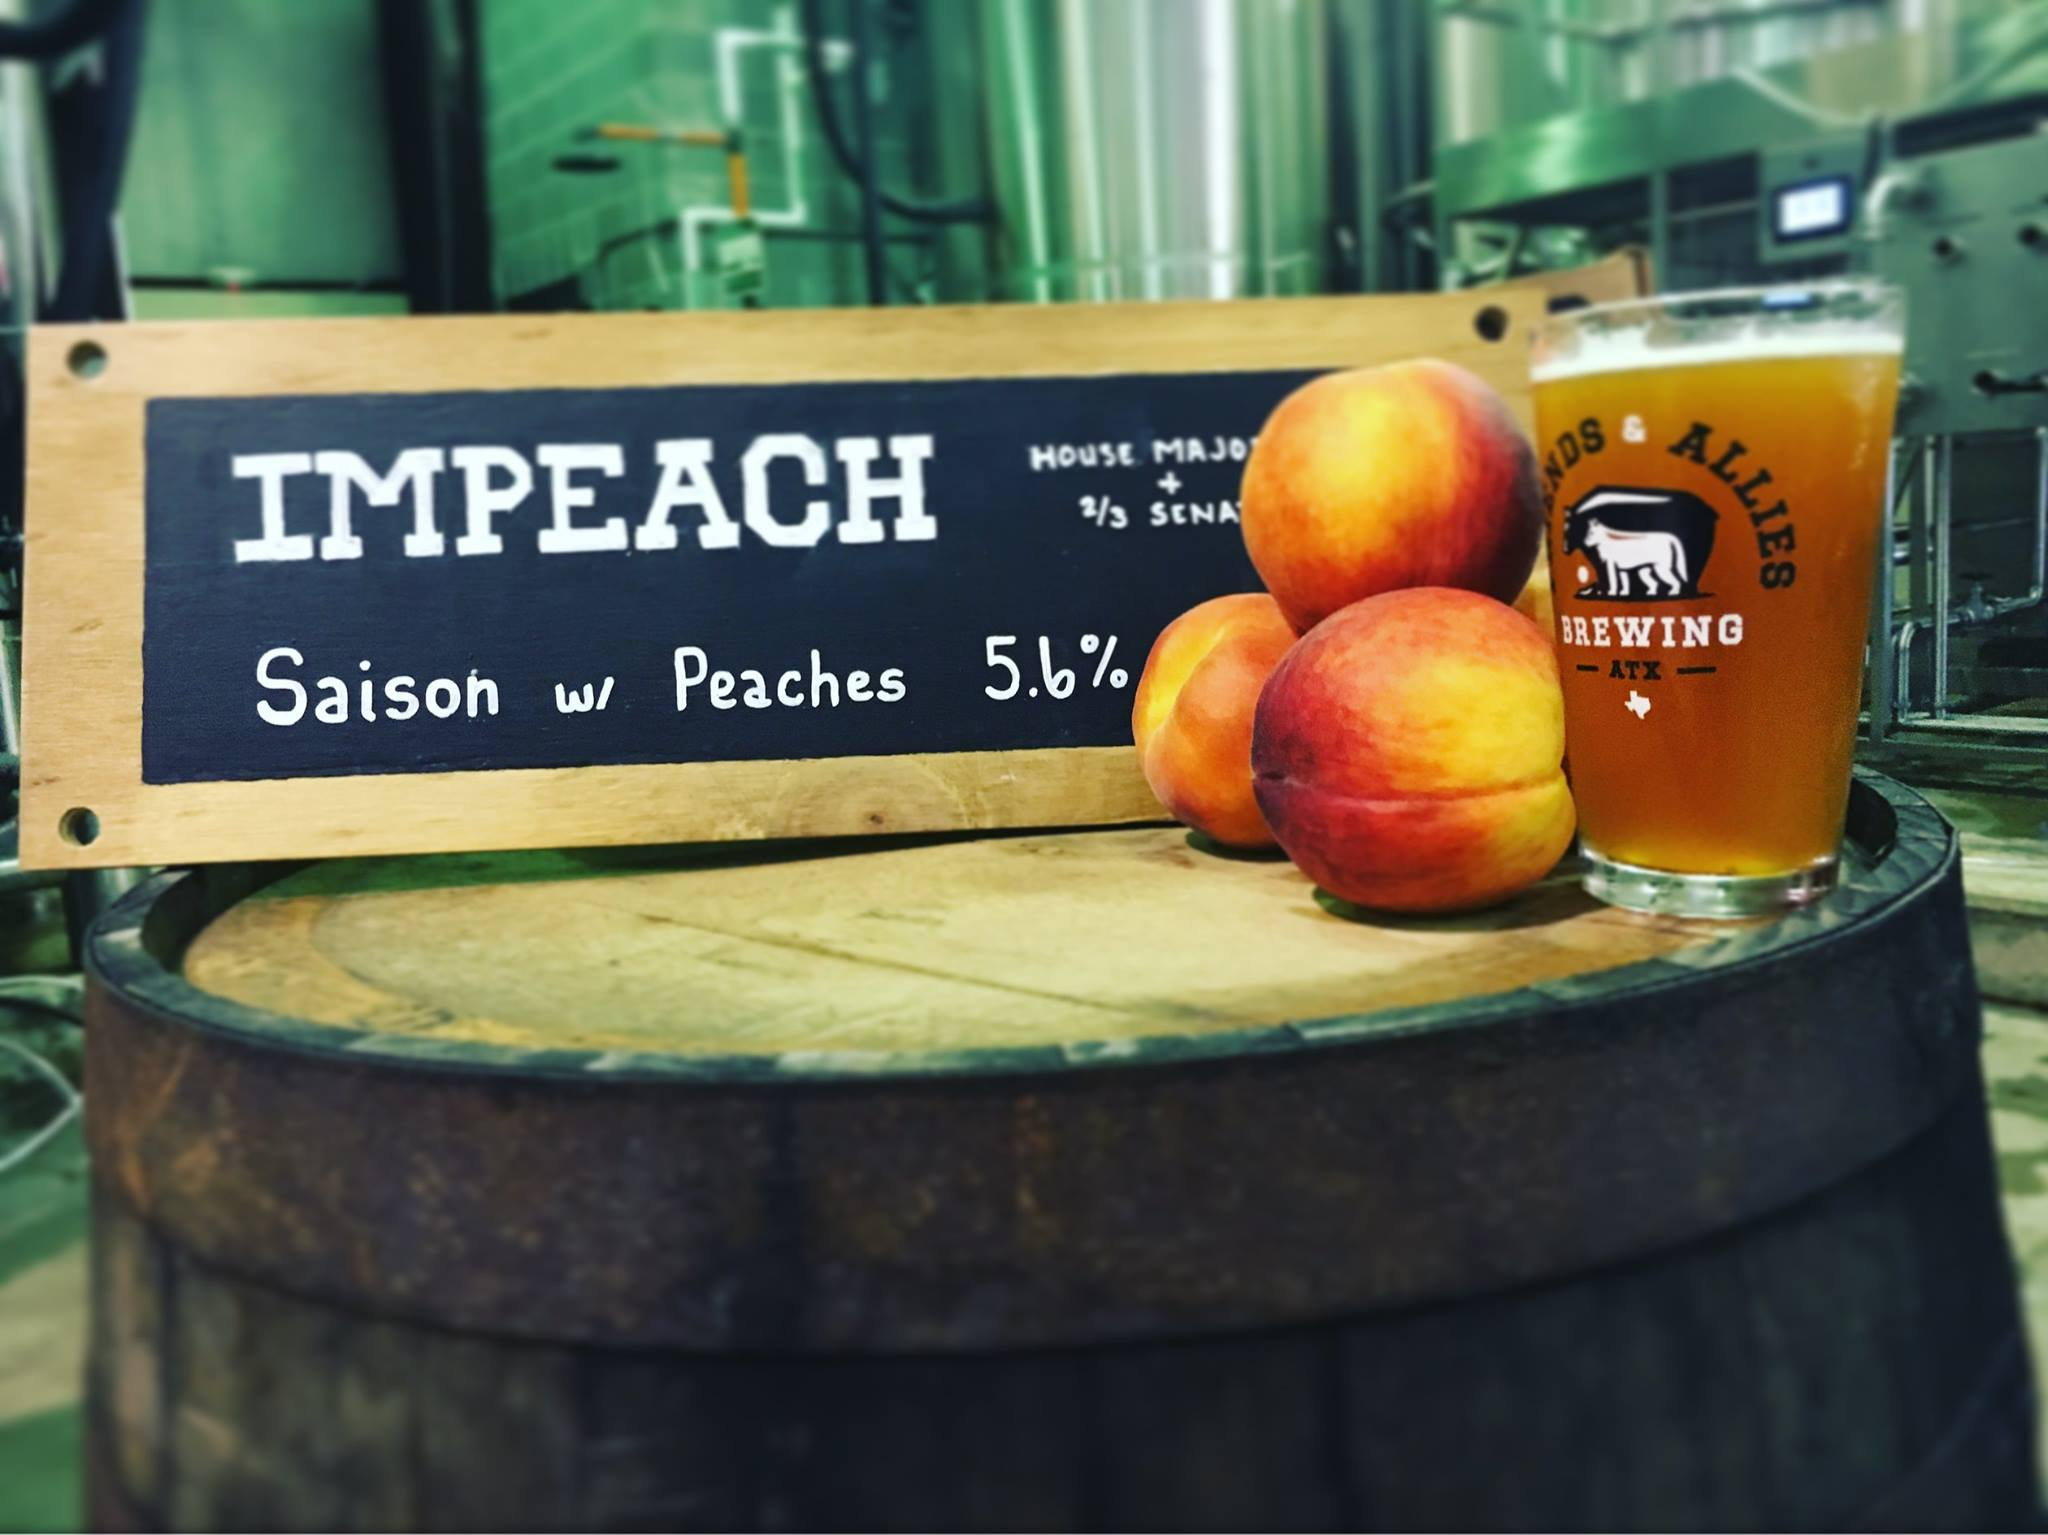 Friends and Allies Brewing's ImPeach beer